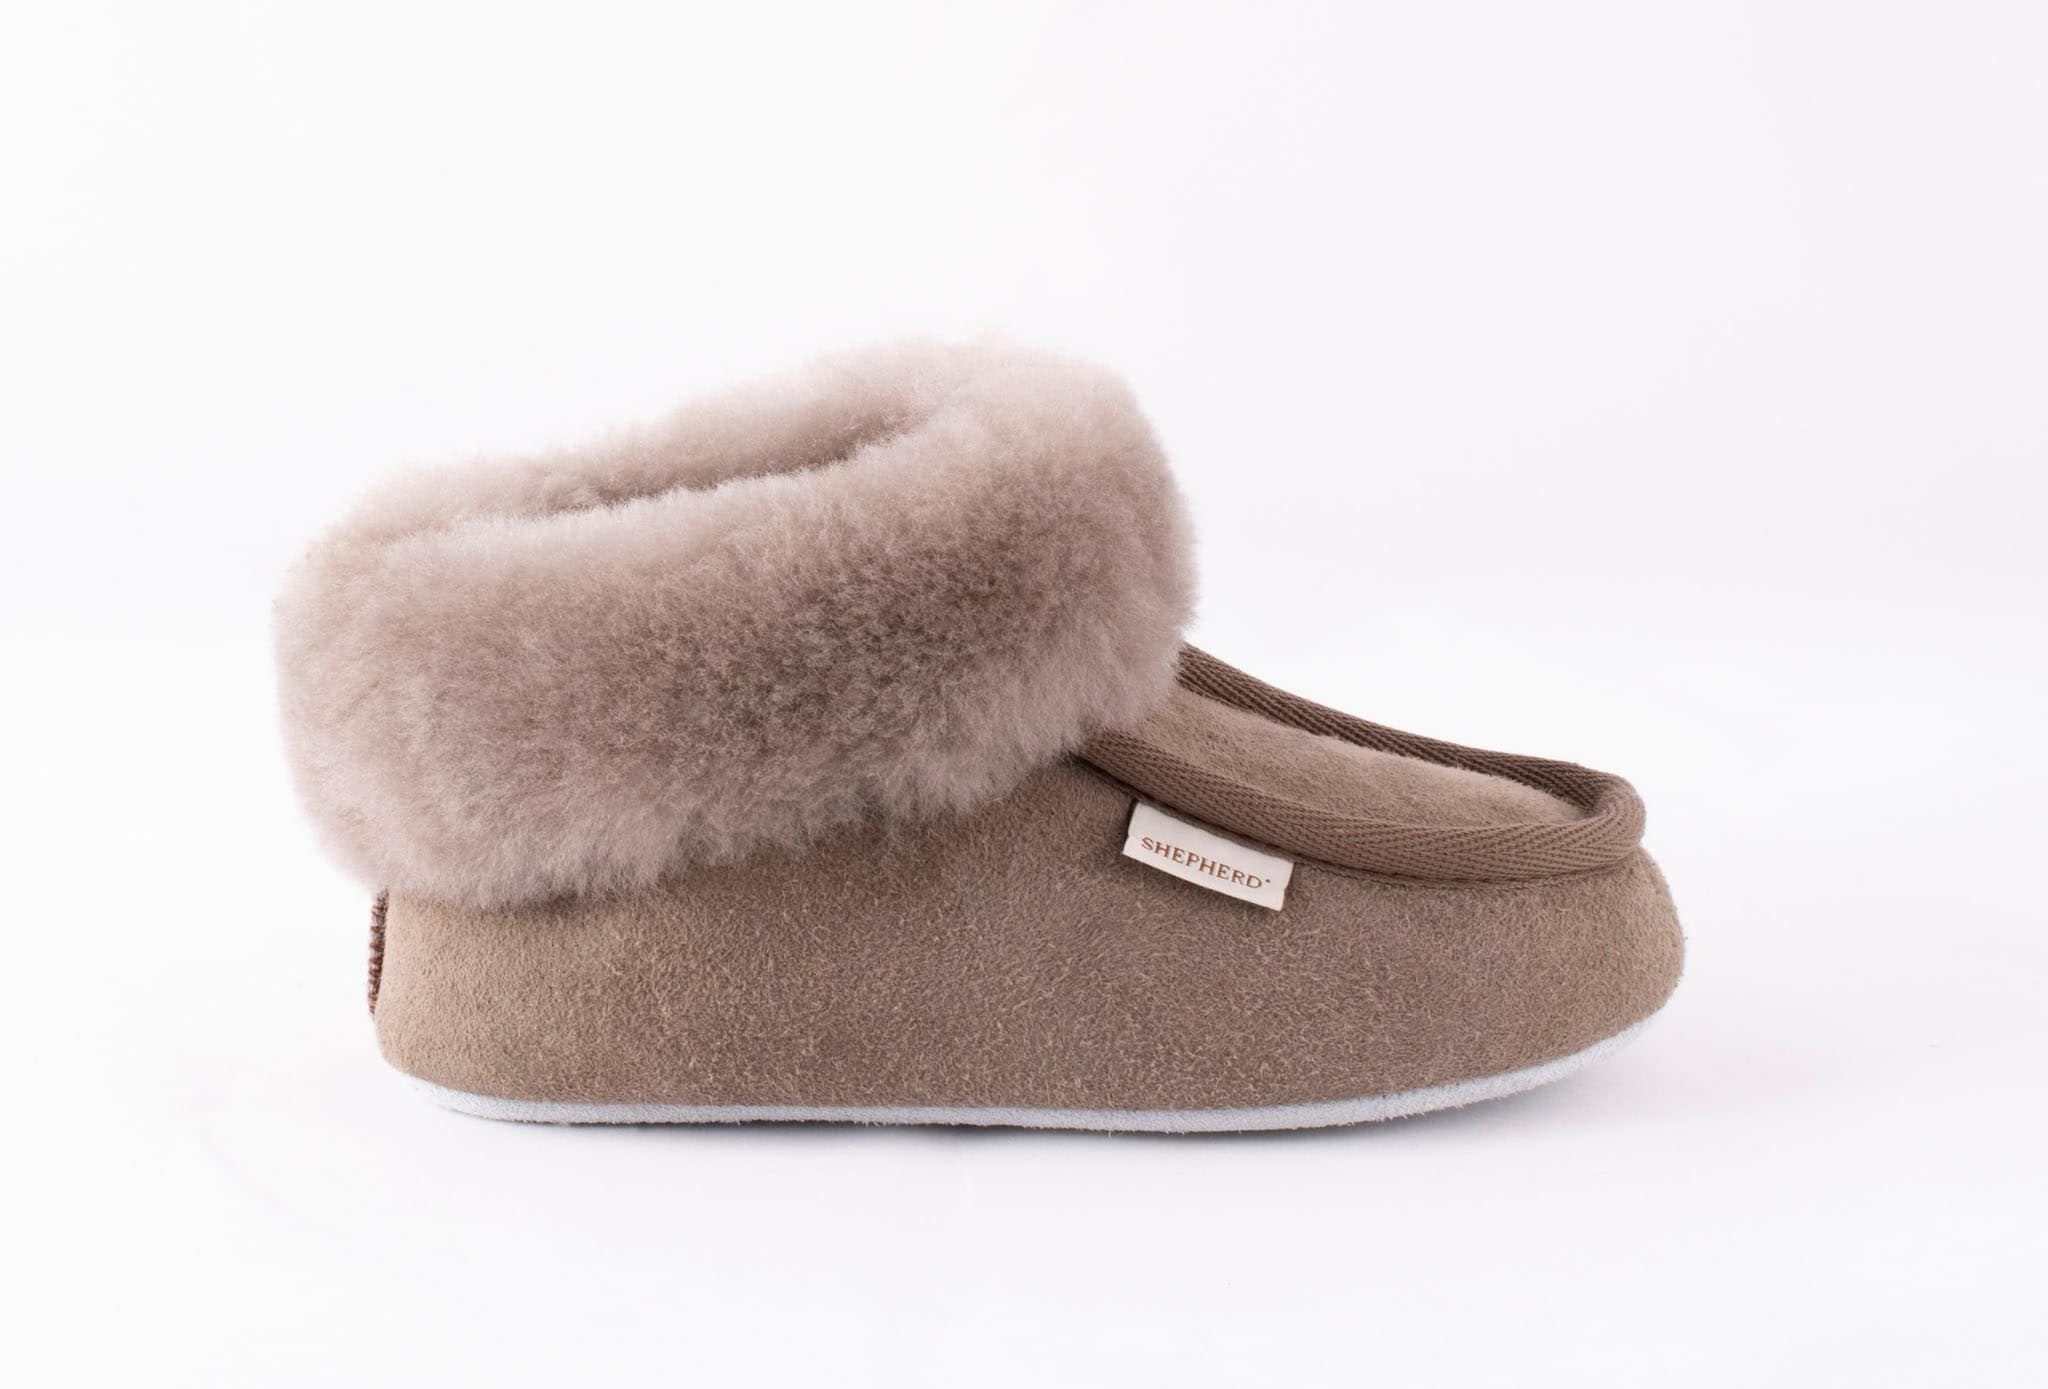 Osby slippers, size 30-35